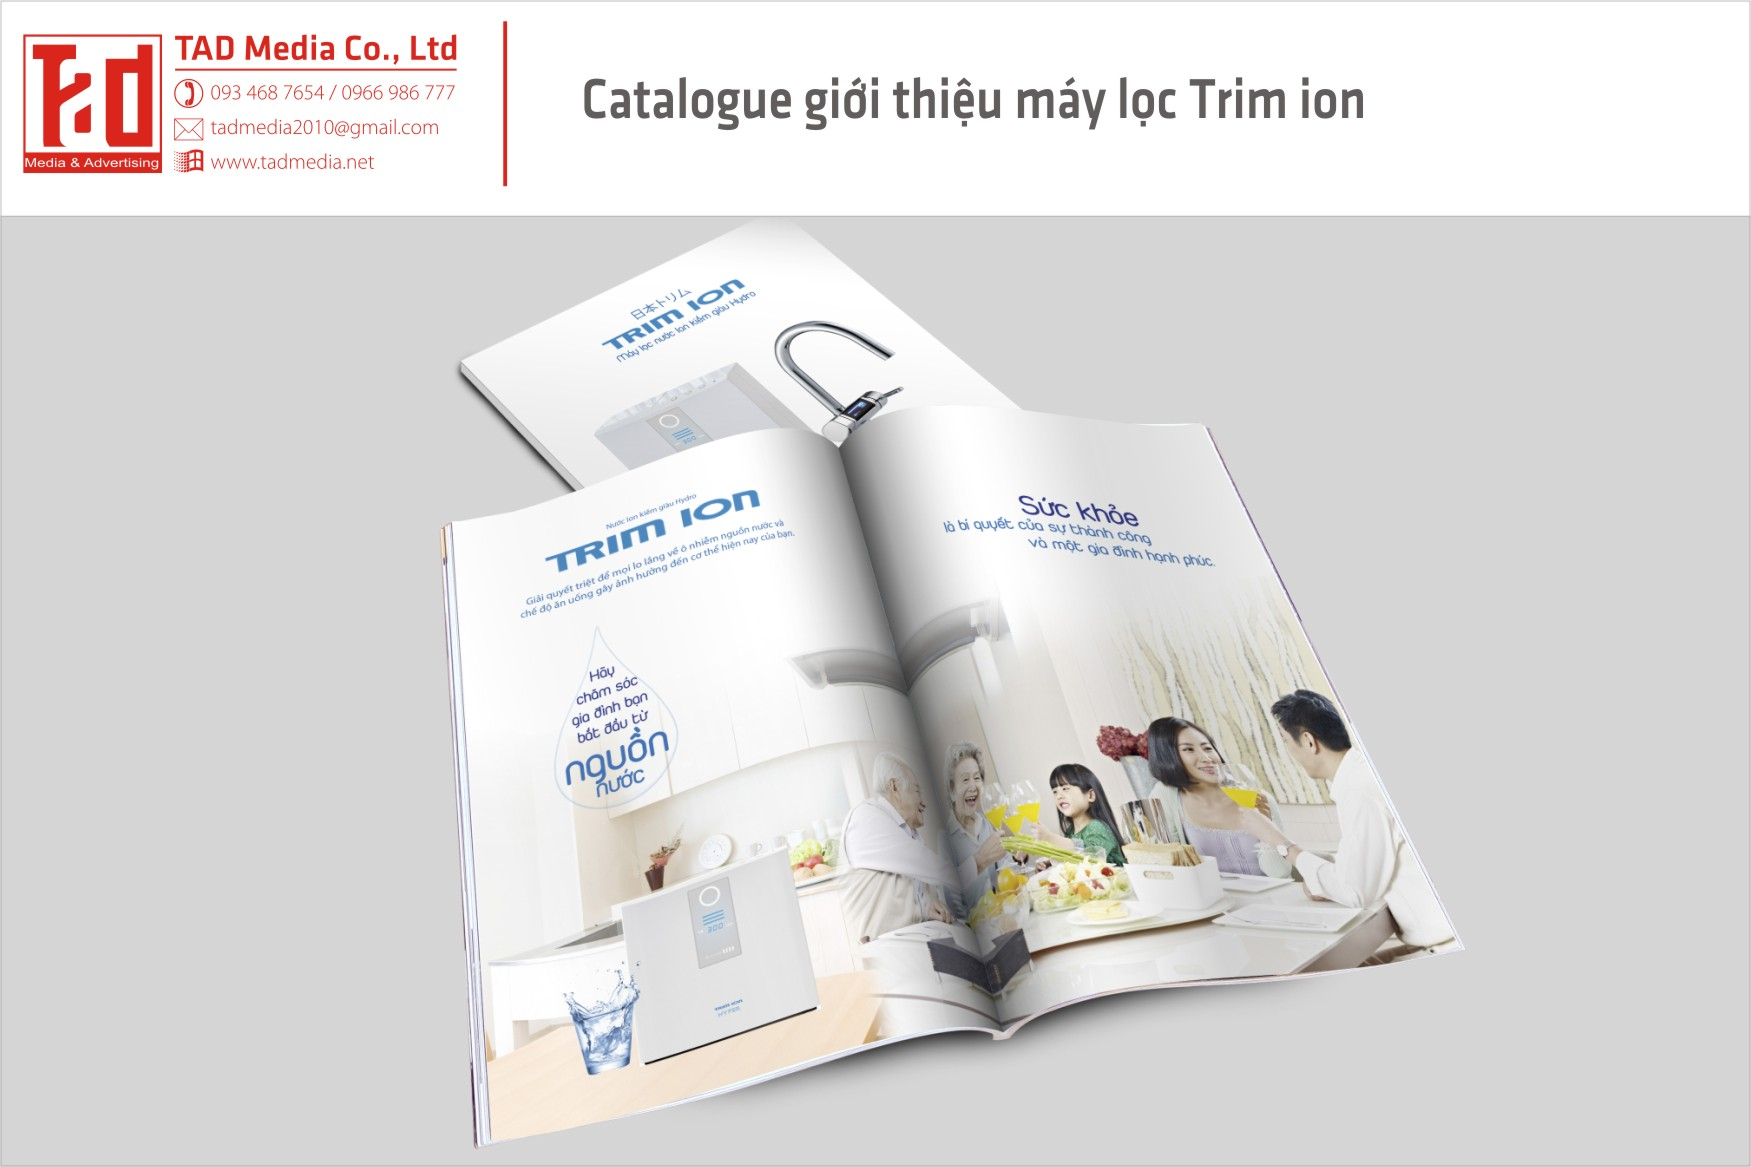 catelogue-gioi-thieu-may-loc-trim-ion83